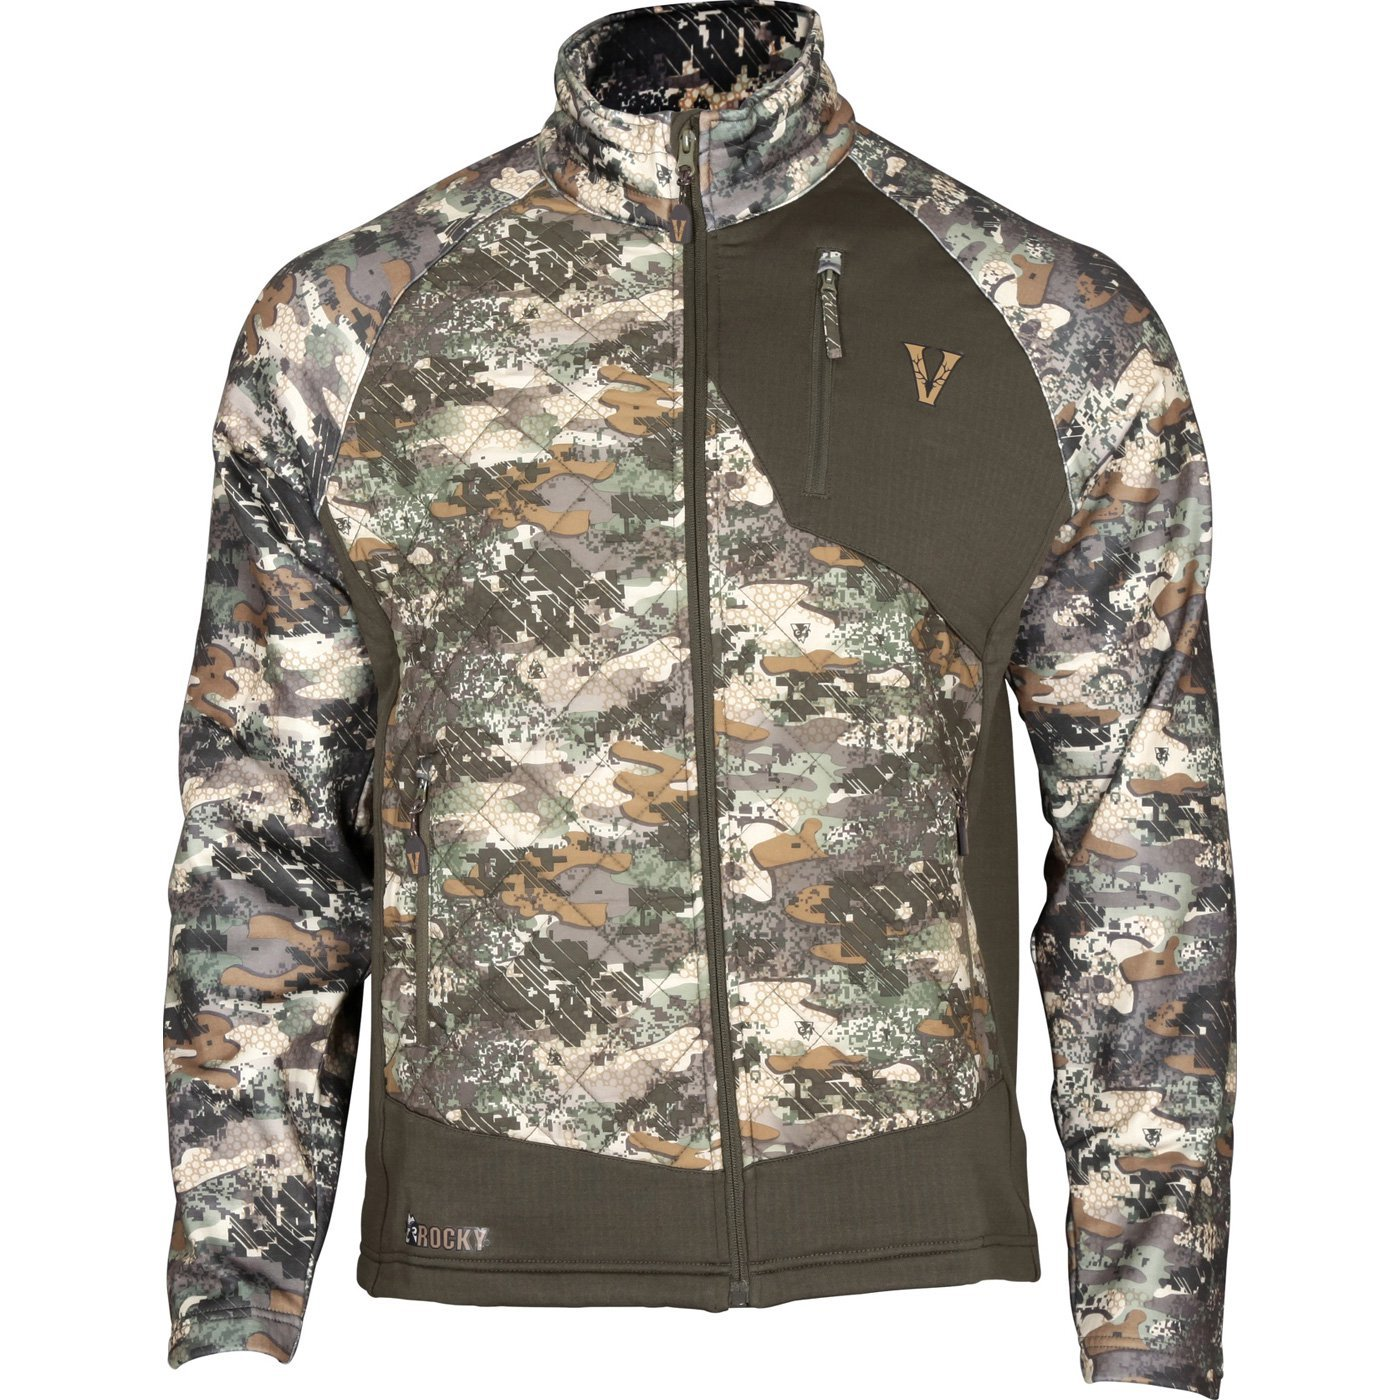 Rocky Men's Venator 80G Insulated Hybrid Jacket, Camouflage, X-Large